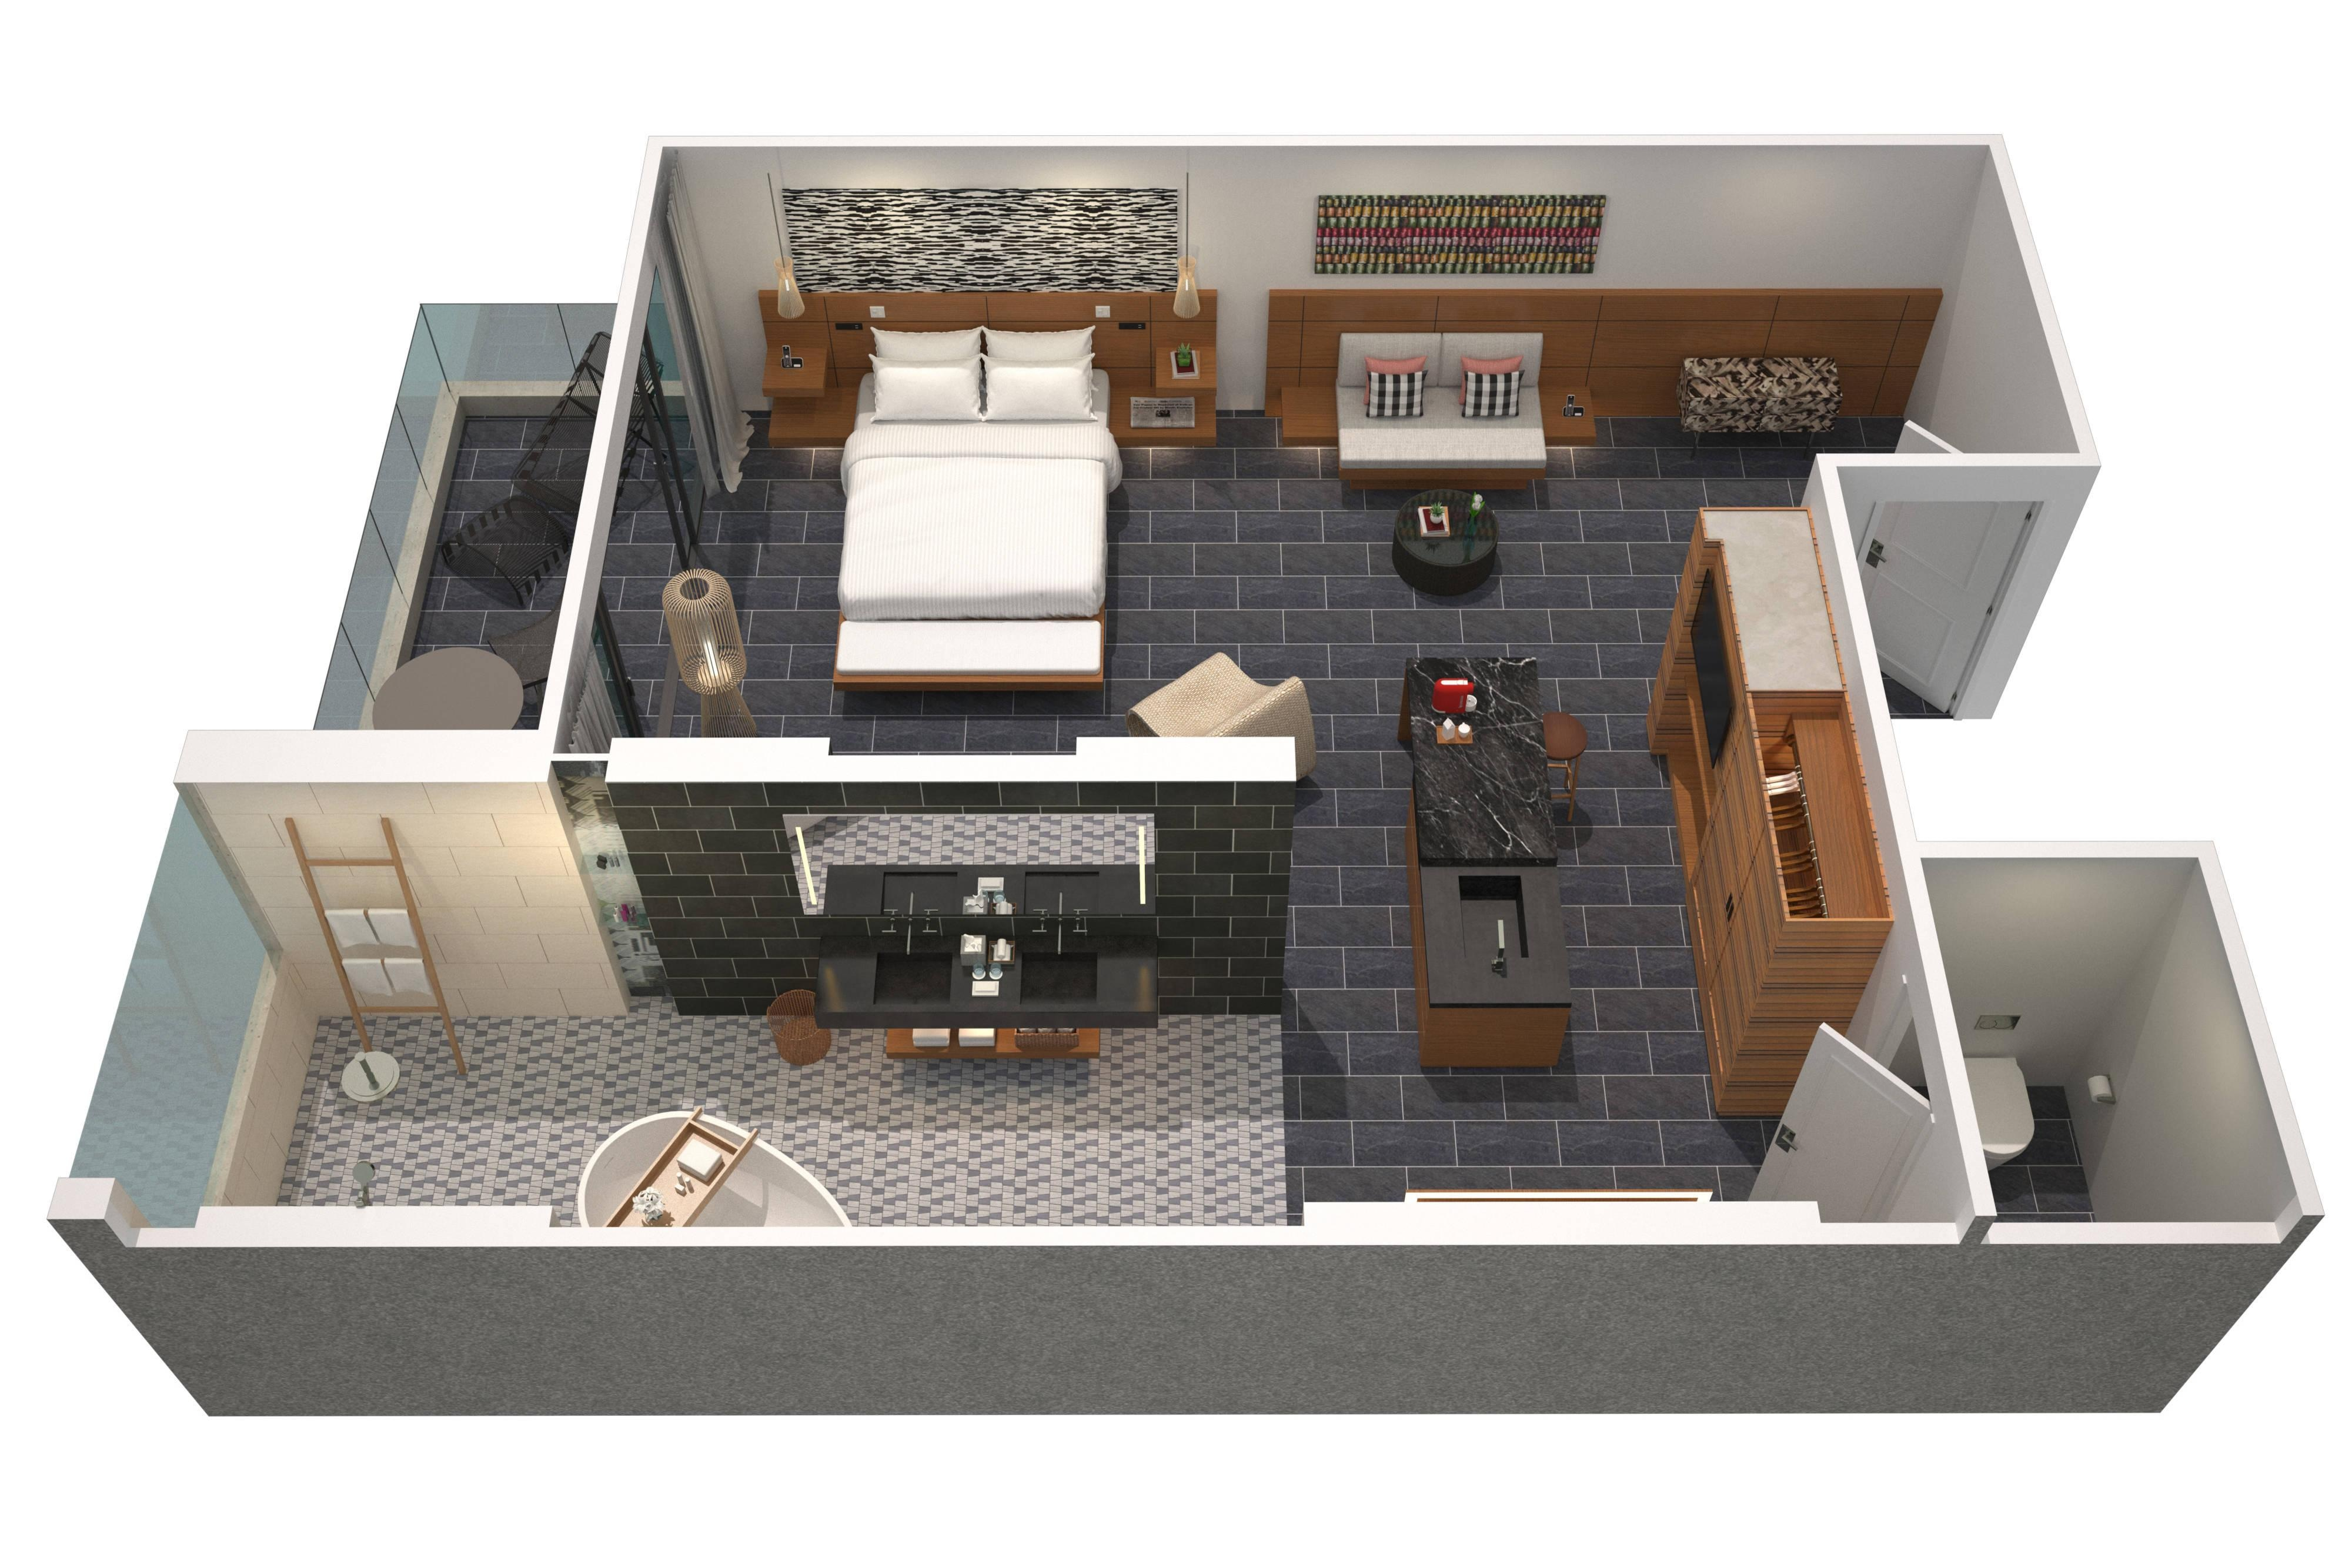 Suite Executive, plan de la surface habitable